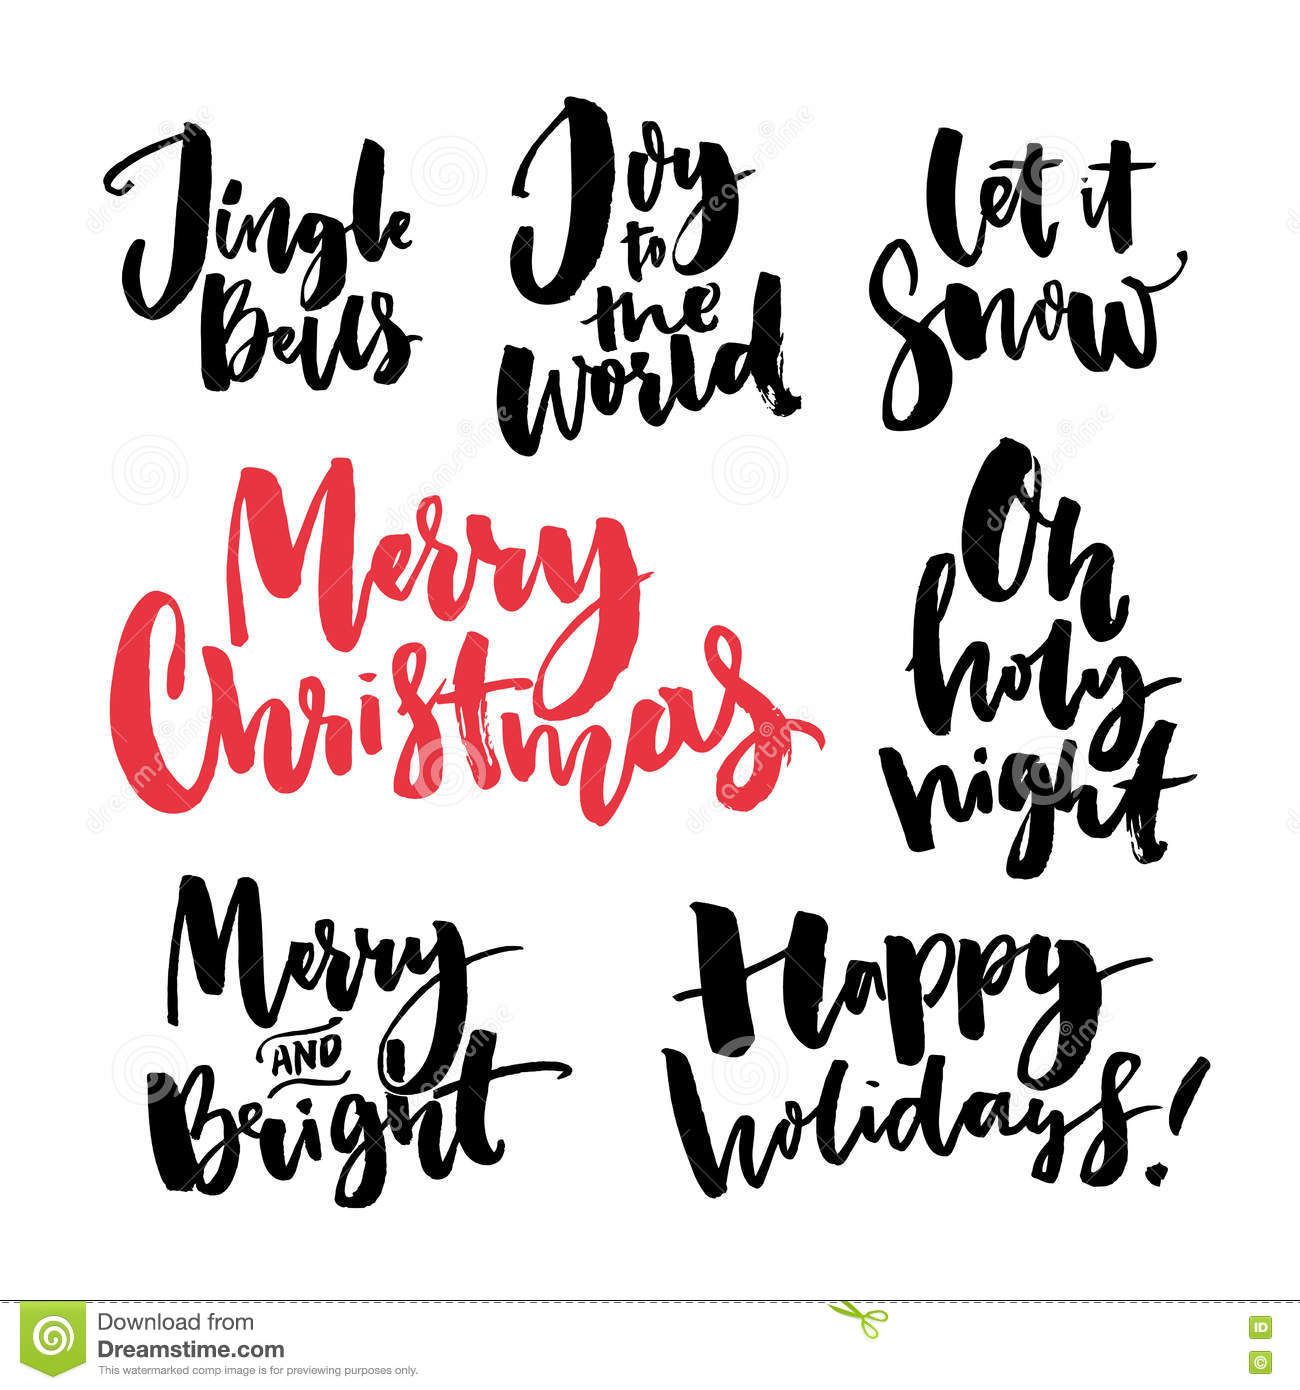 Merry christmas text and seasonal greetings handwritten